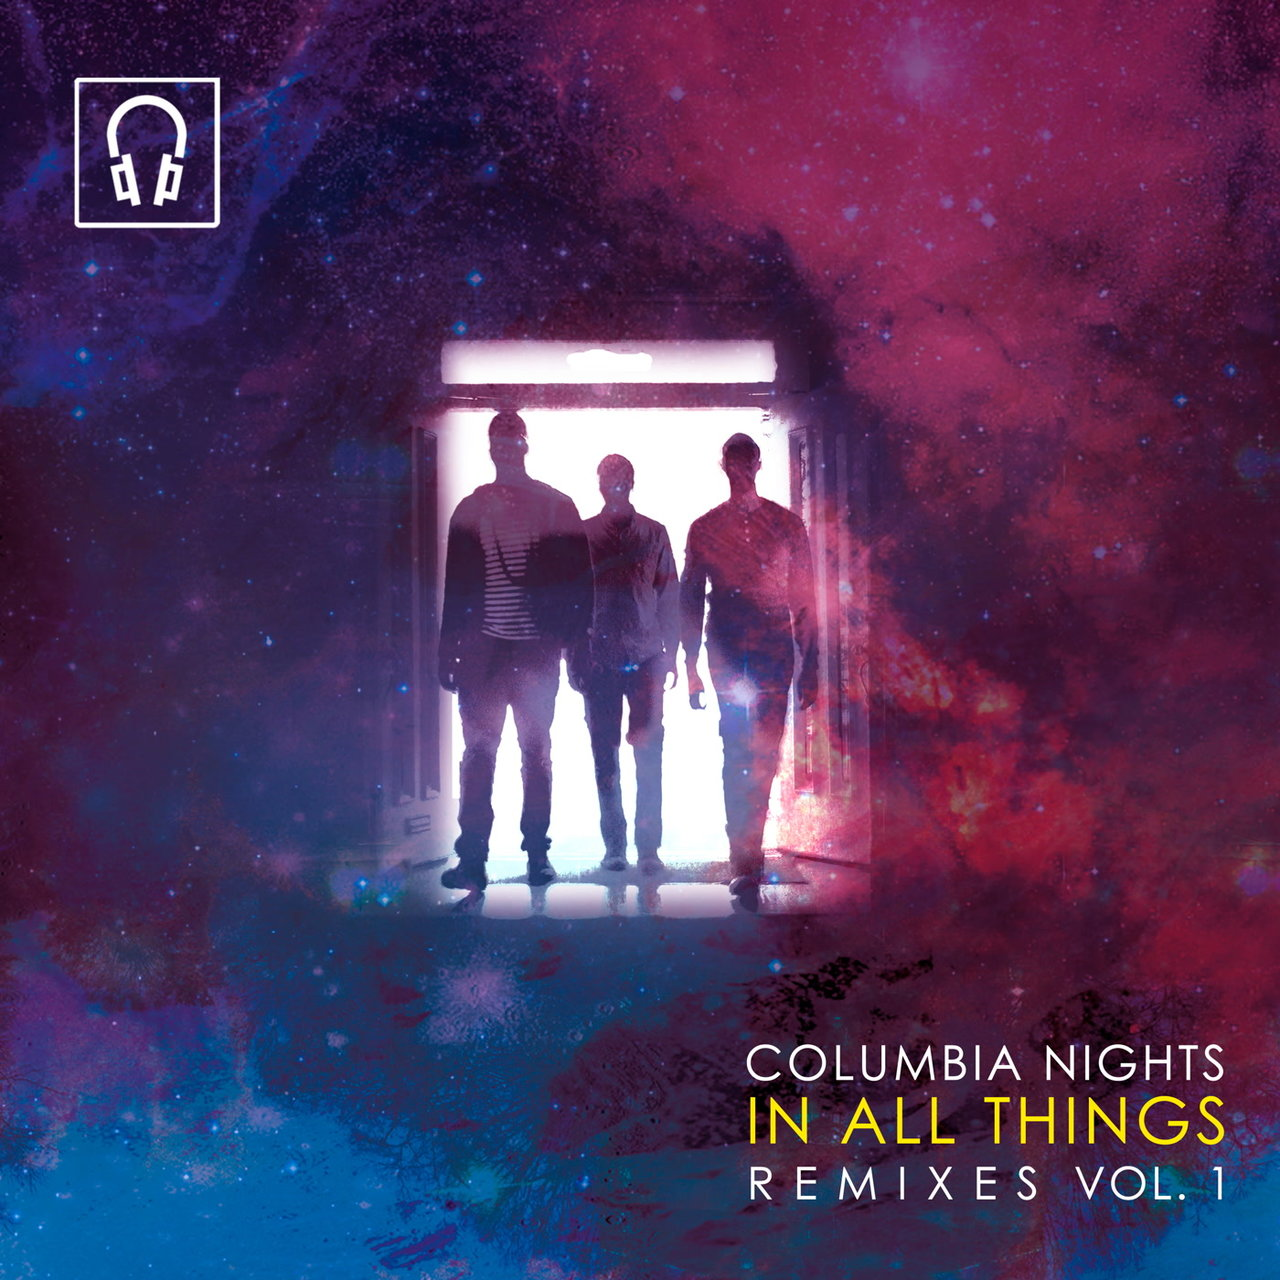 In All Things Remixes, Vol. 1